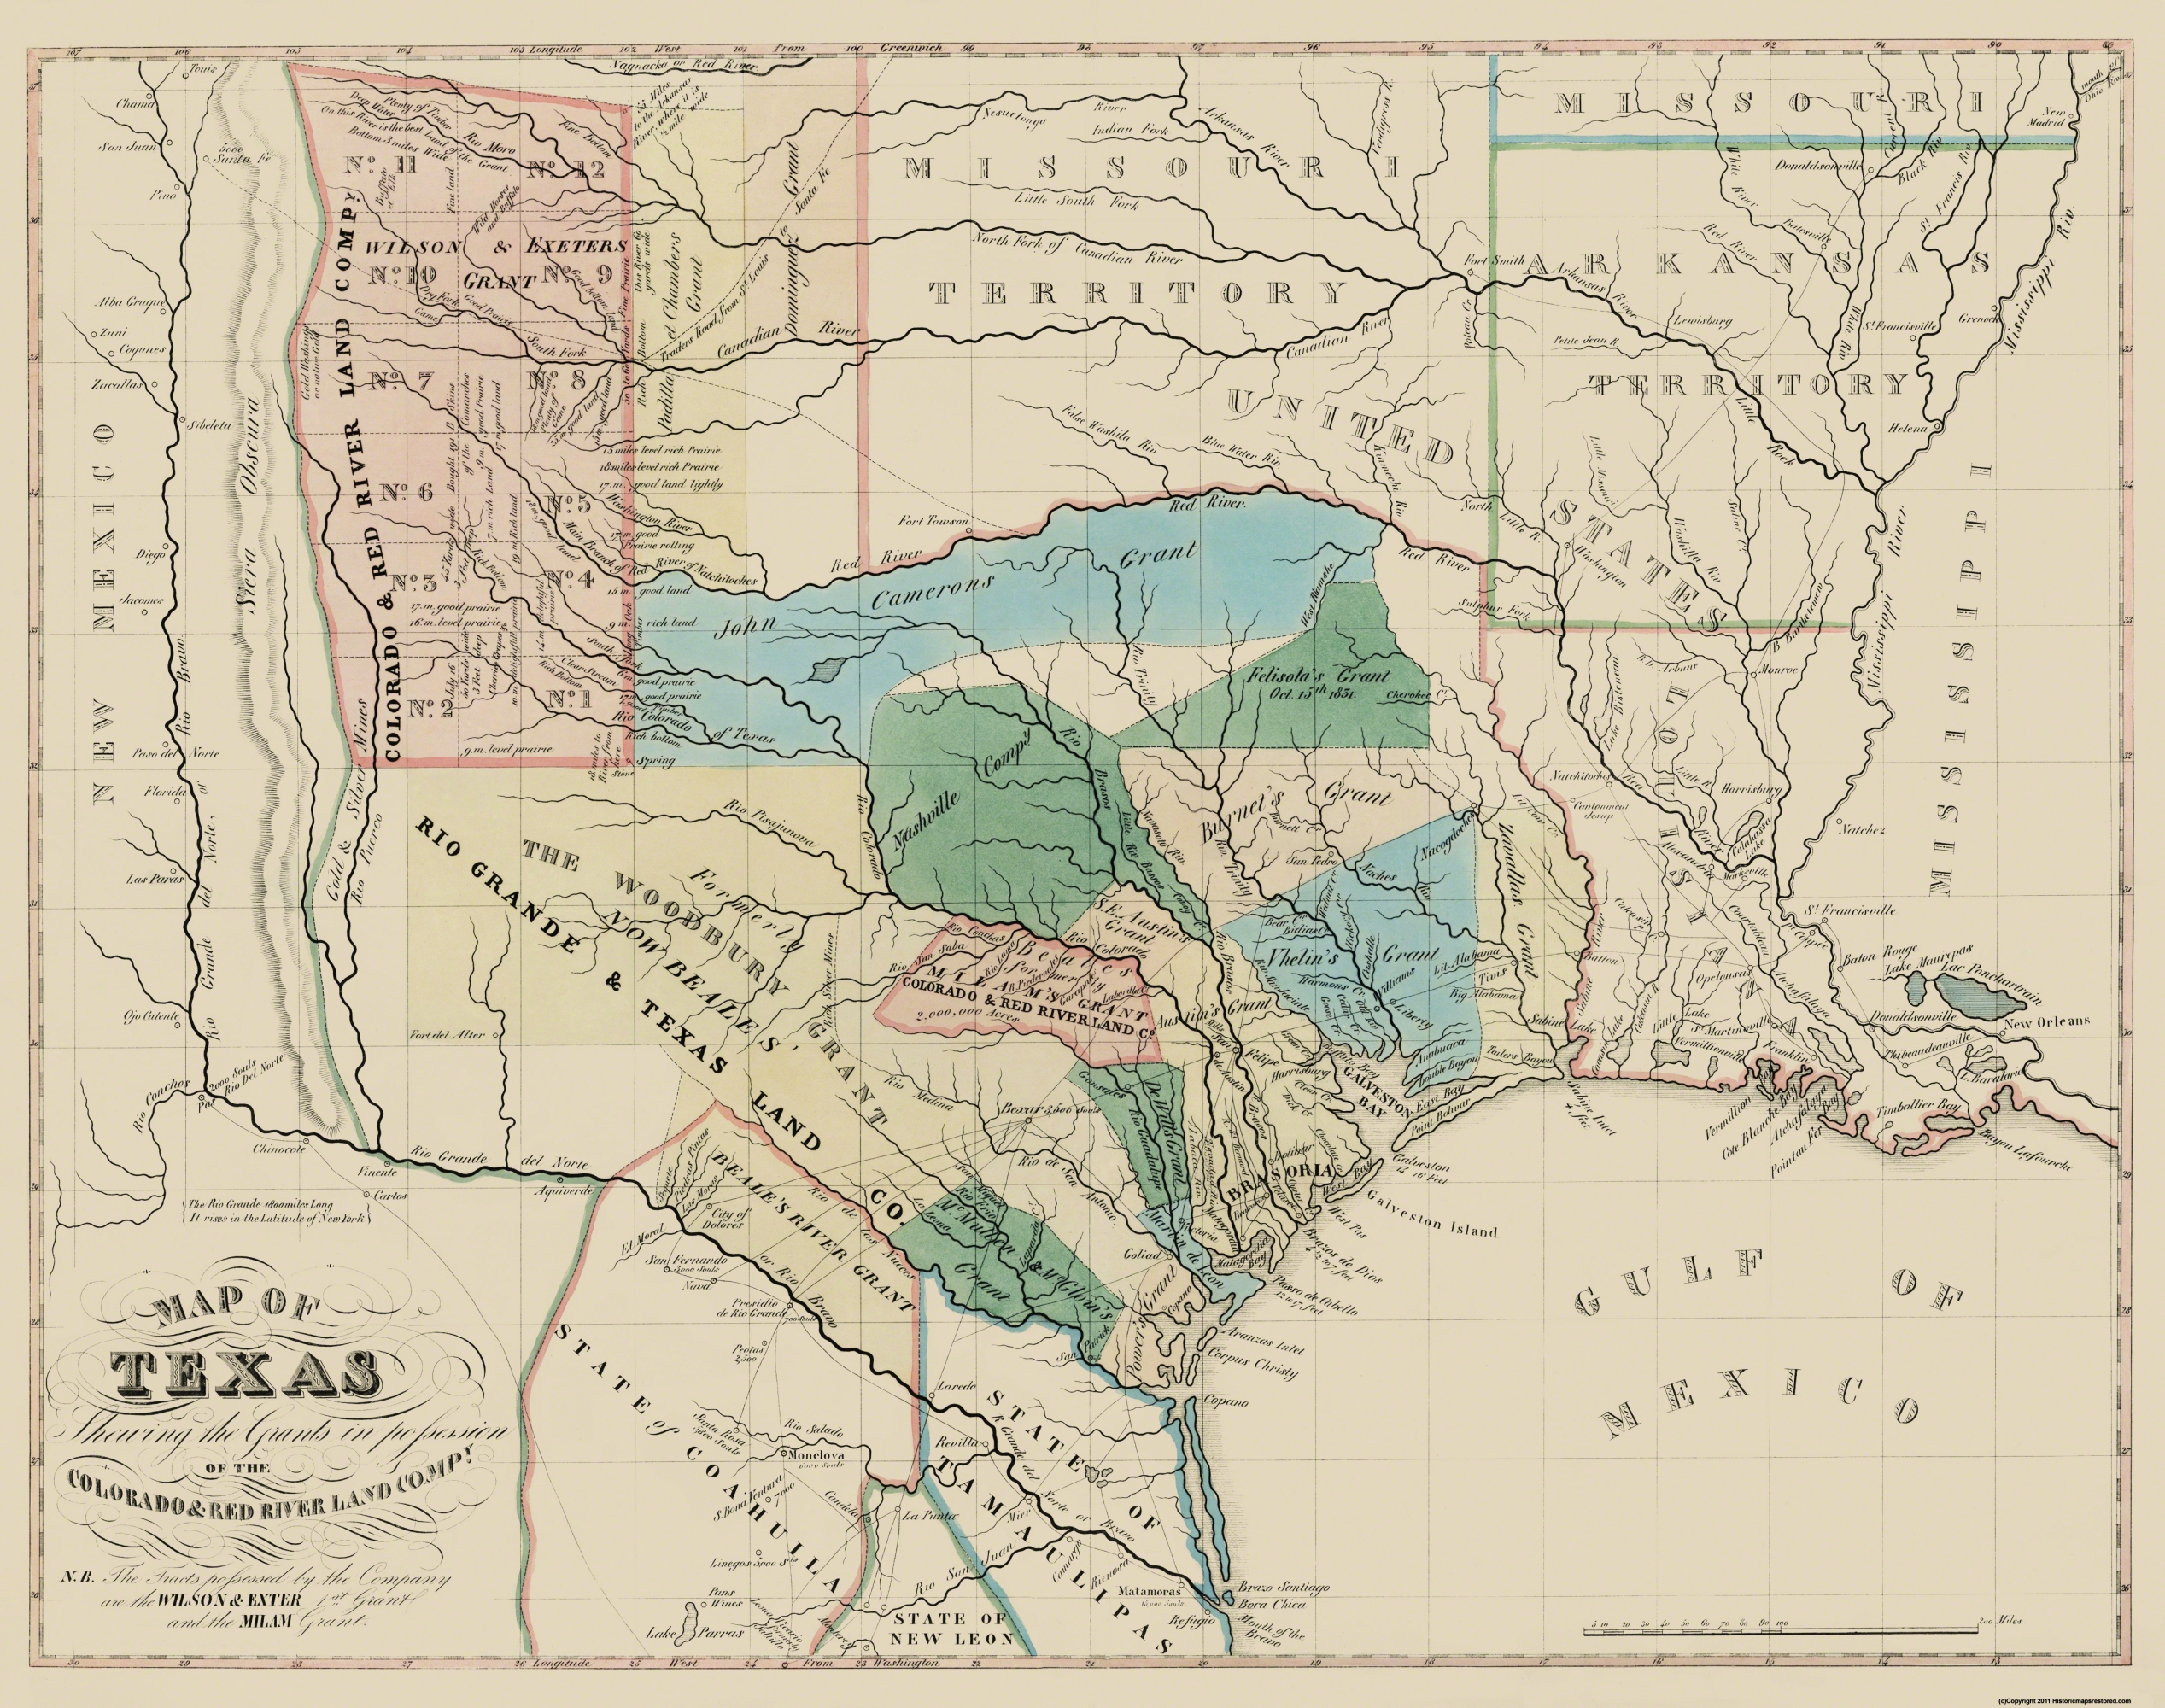 Old Map Texas Colorado Red River Land Grants - Red river map us